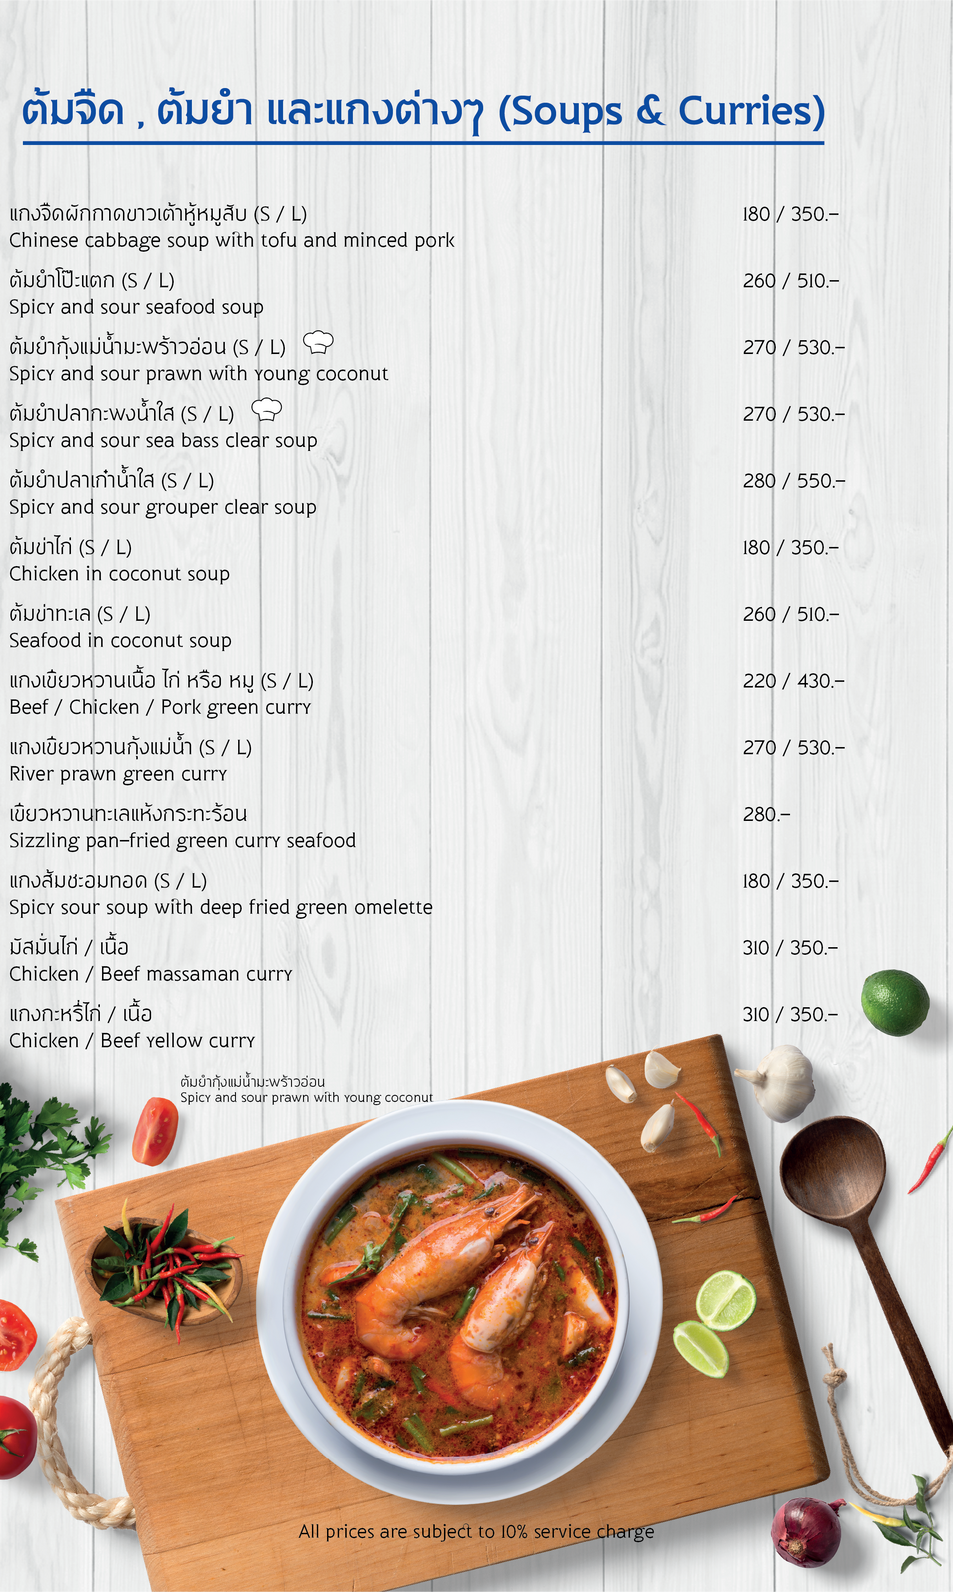 Soups & Curries